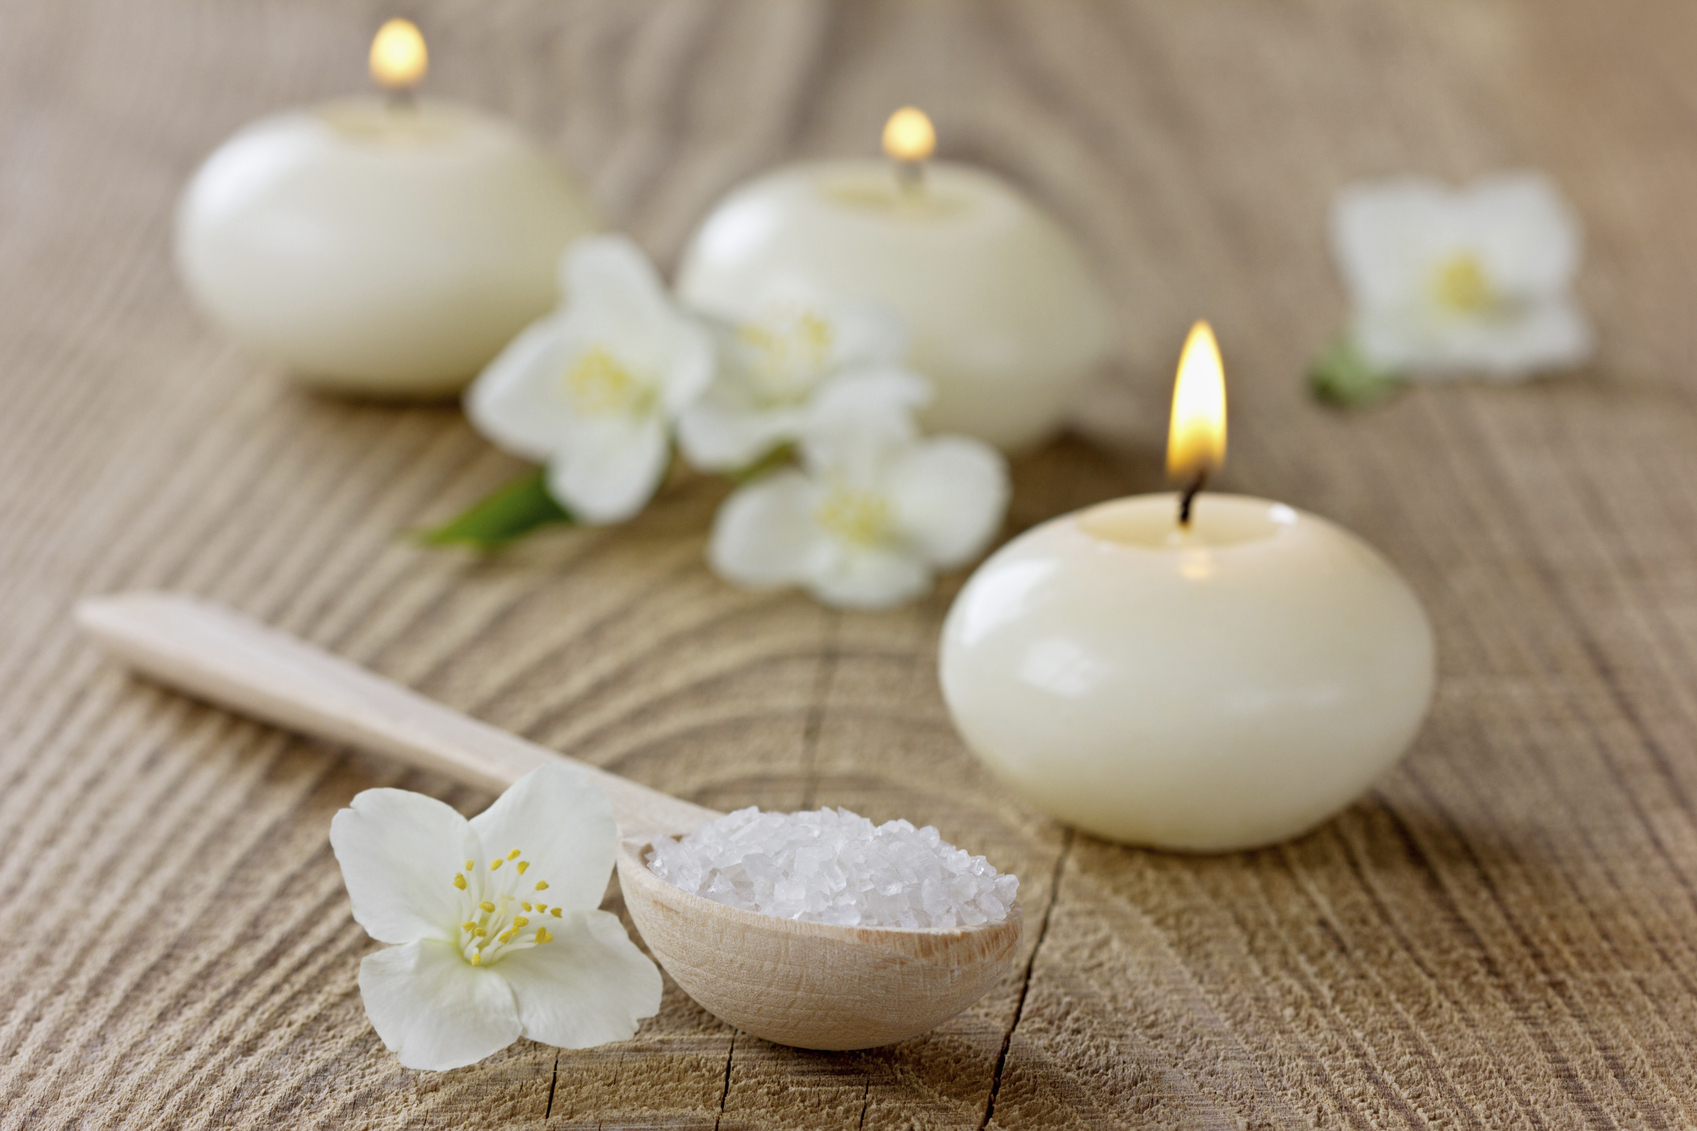 Spa composition on a rustic surface, aromatherapy concept